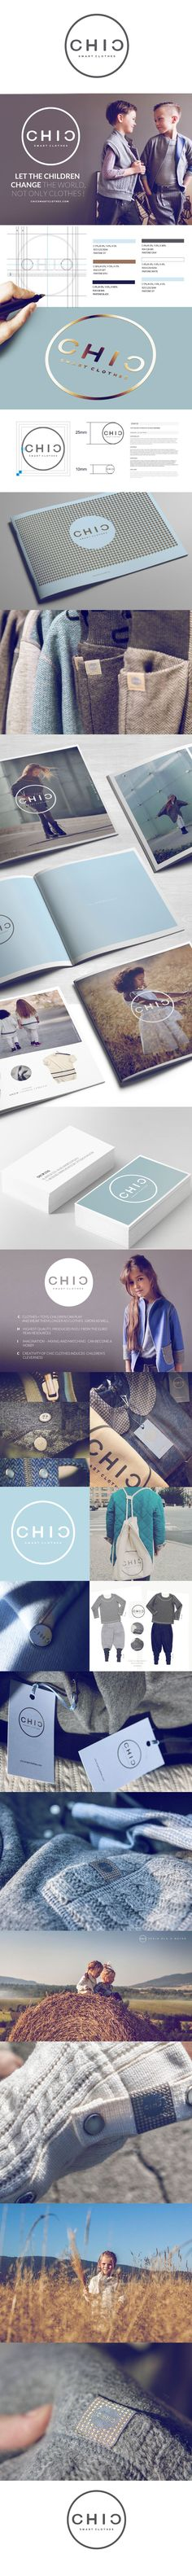 CHIC - smart clothes ID on Behance